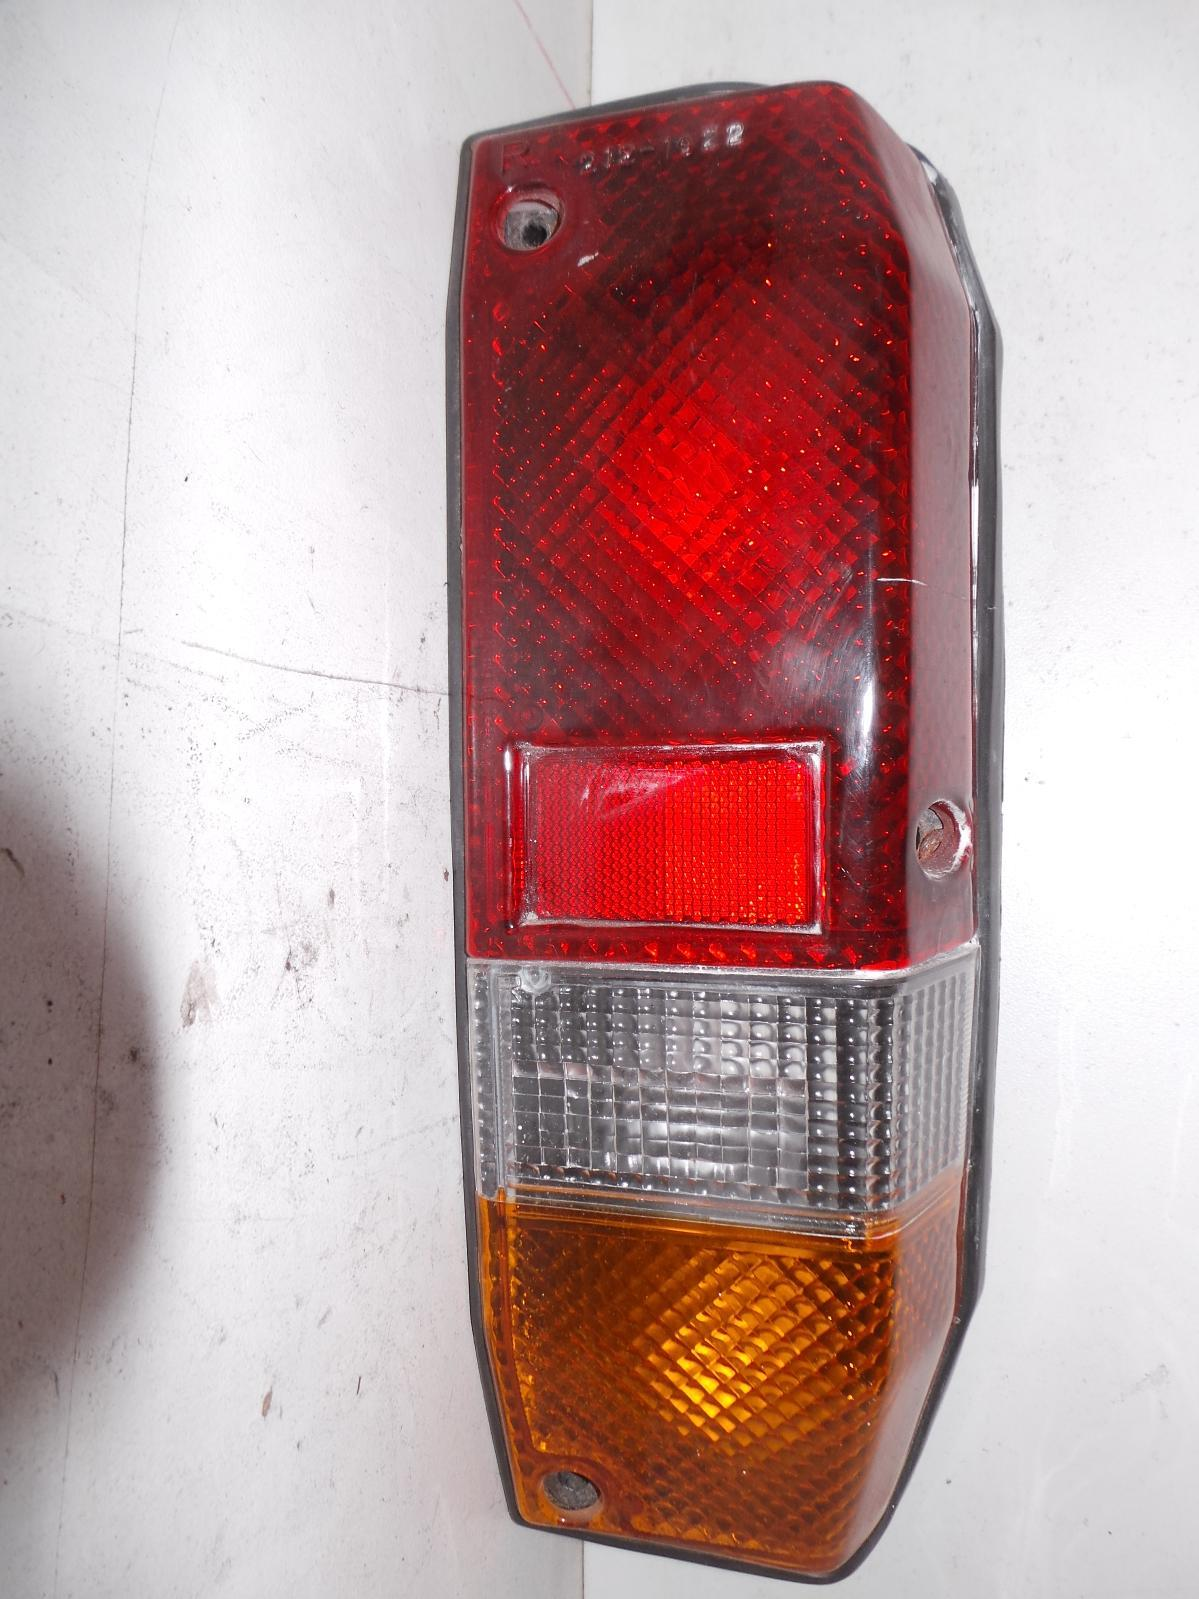 TOYOTA LANDCRUISER, Right Taillight, 76 SERIES (UPDATE), WAGON, IN BODY, 03/07-